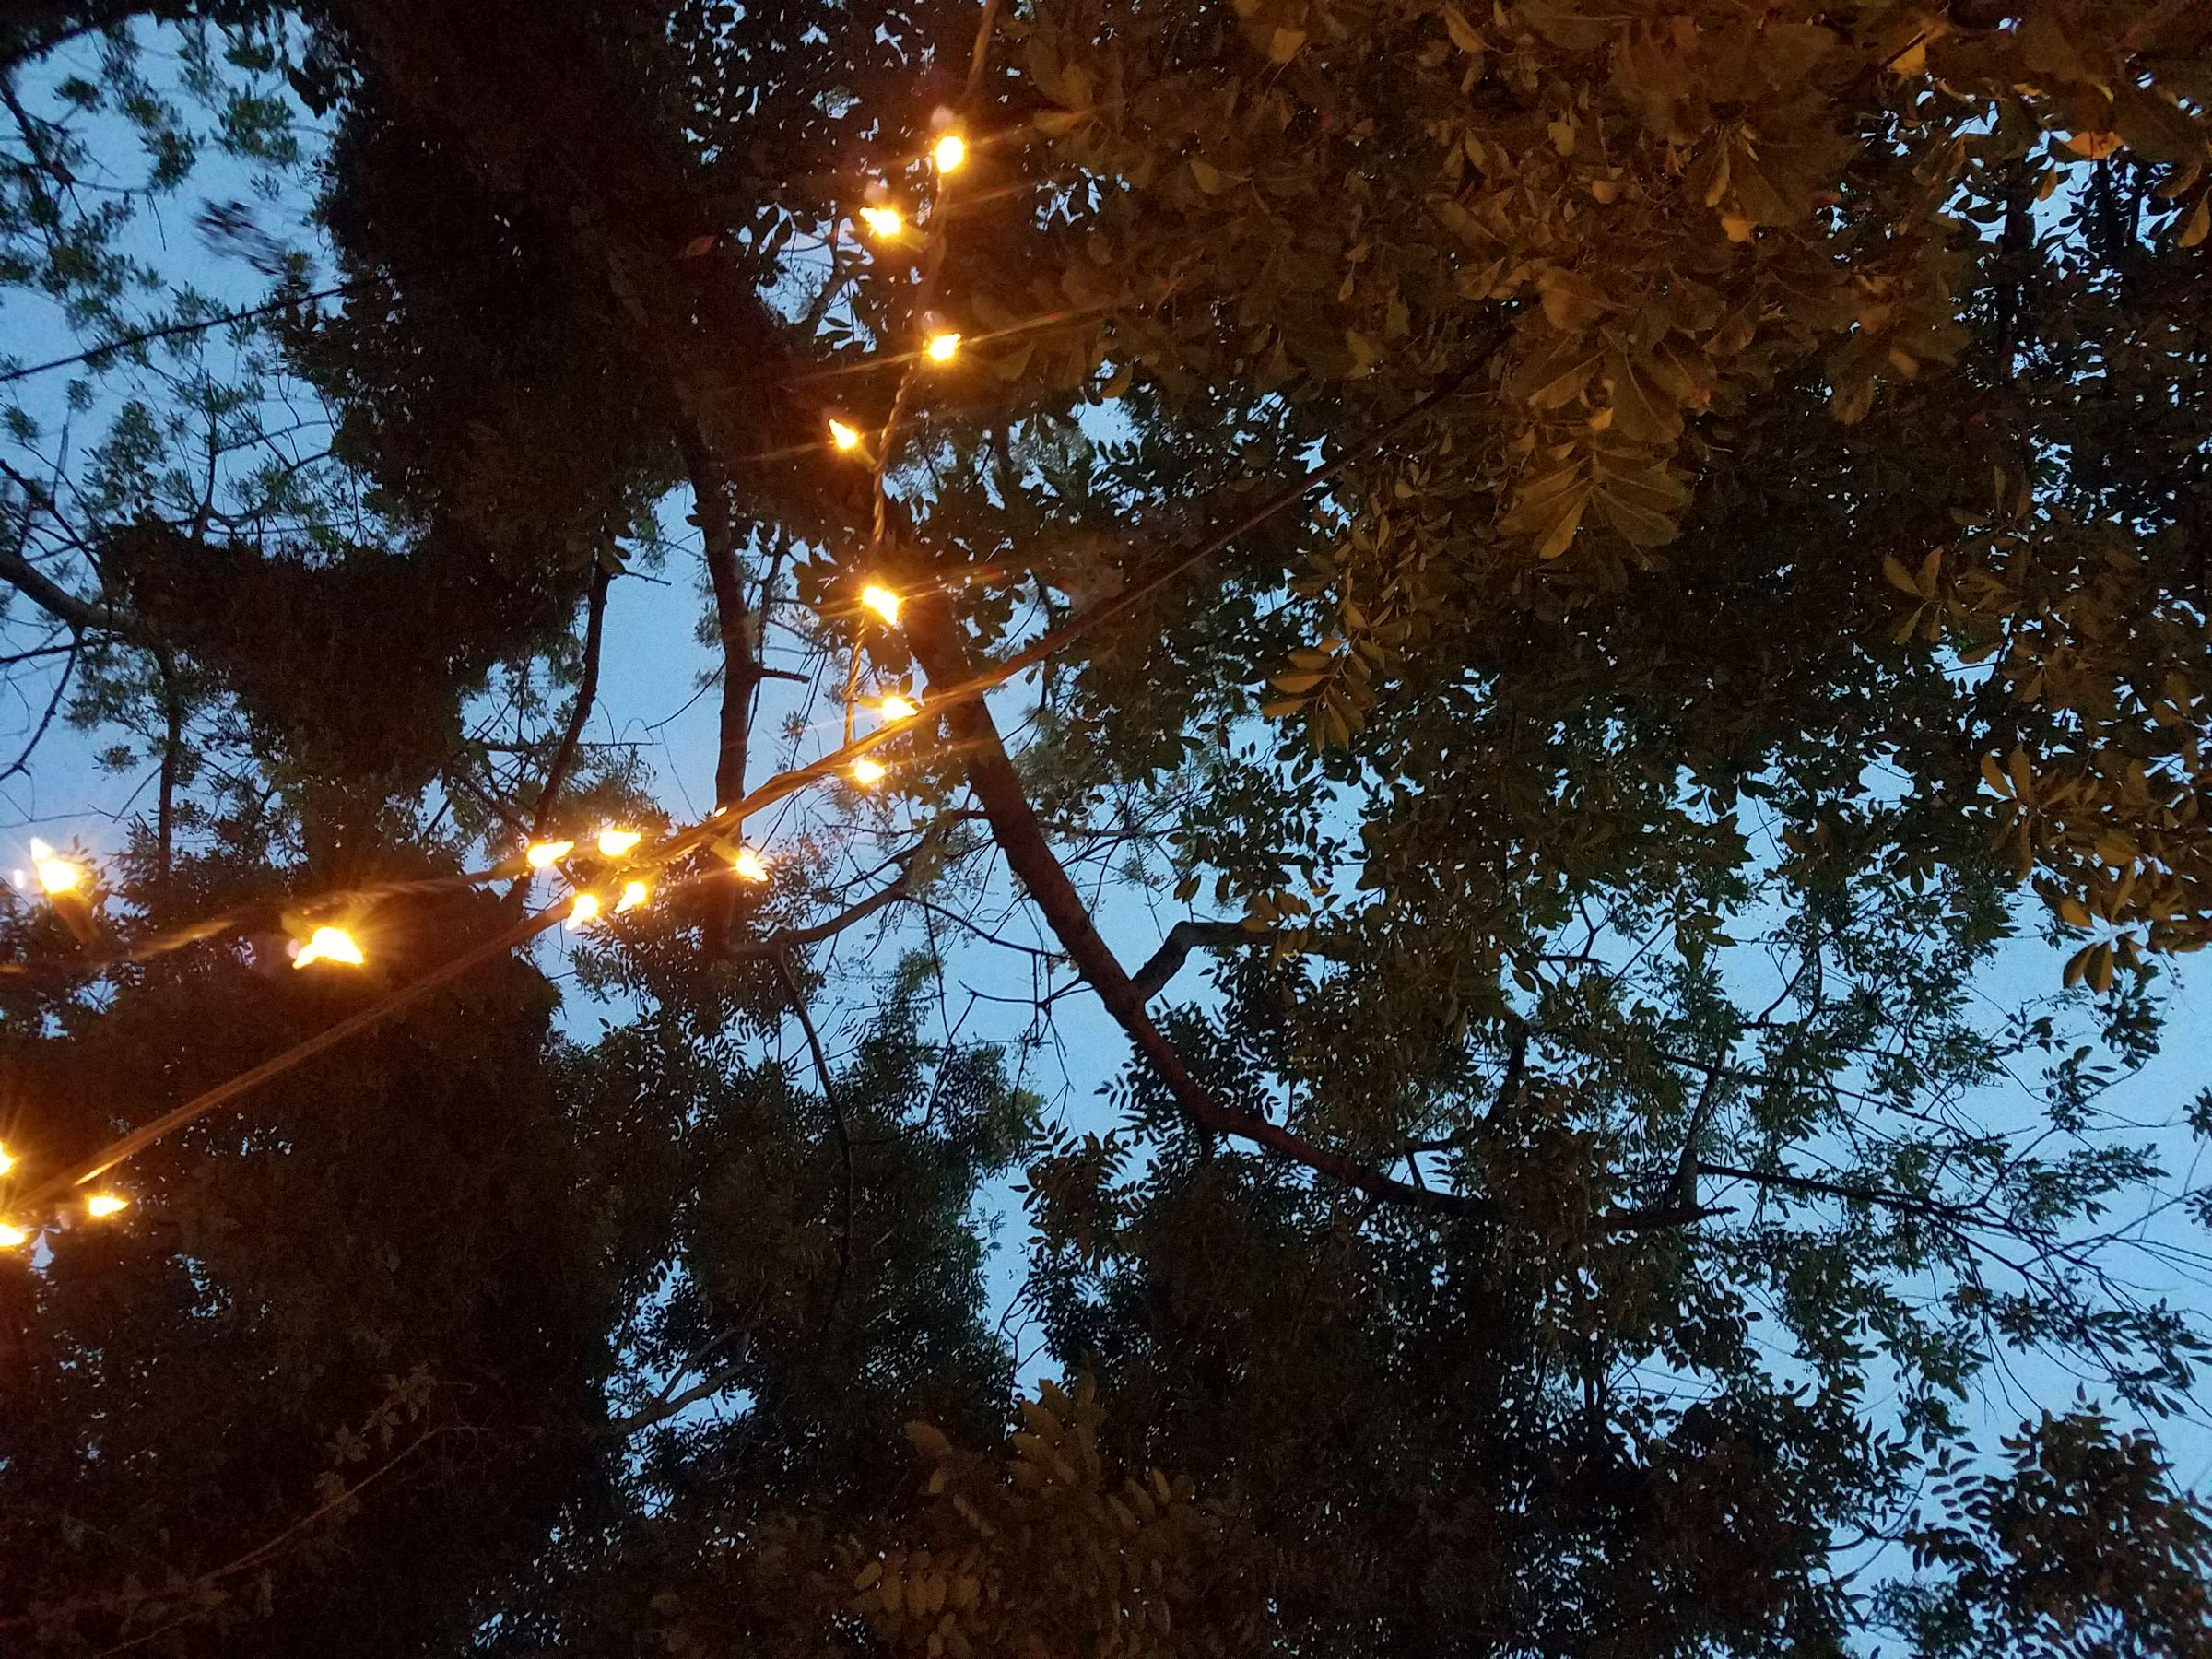 A photograph taken facing upward at a blue sky at dusk, through the branches and leaves of deciduous trees. A string of yellow faerie lights winds around a wire that crosses the view.